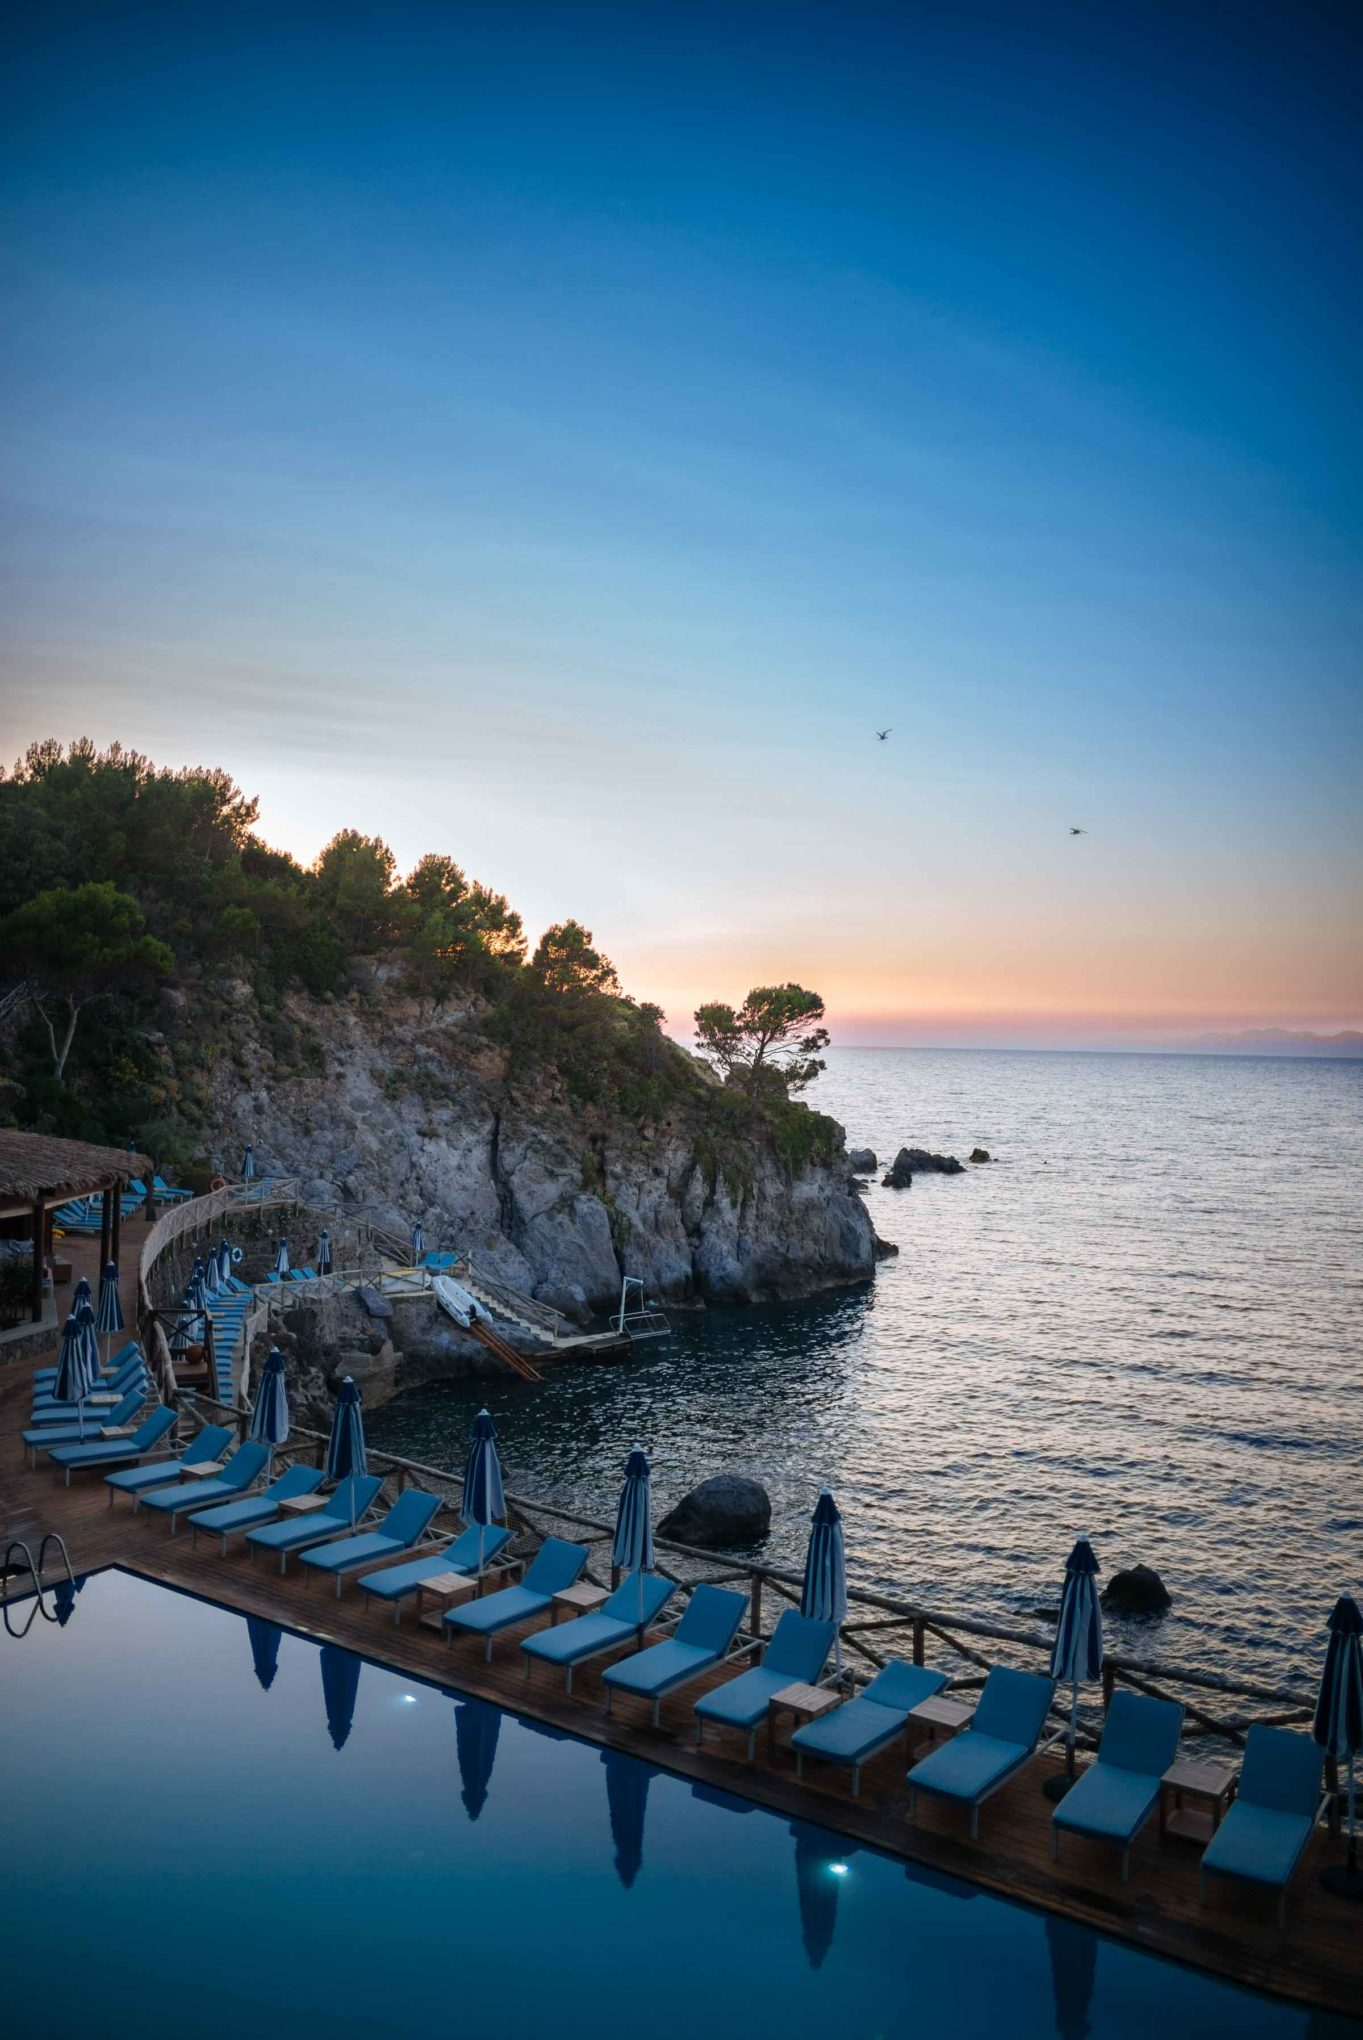 Dinner at the Mezzatorre Hotel's La Torre overlooks the seawater pool and the sea at sunset each evening in Ischia. Photo by The Taste SF, Sarah Stanfield